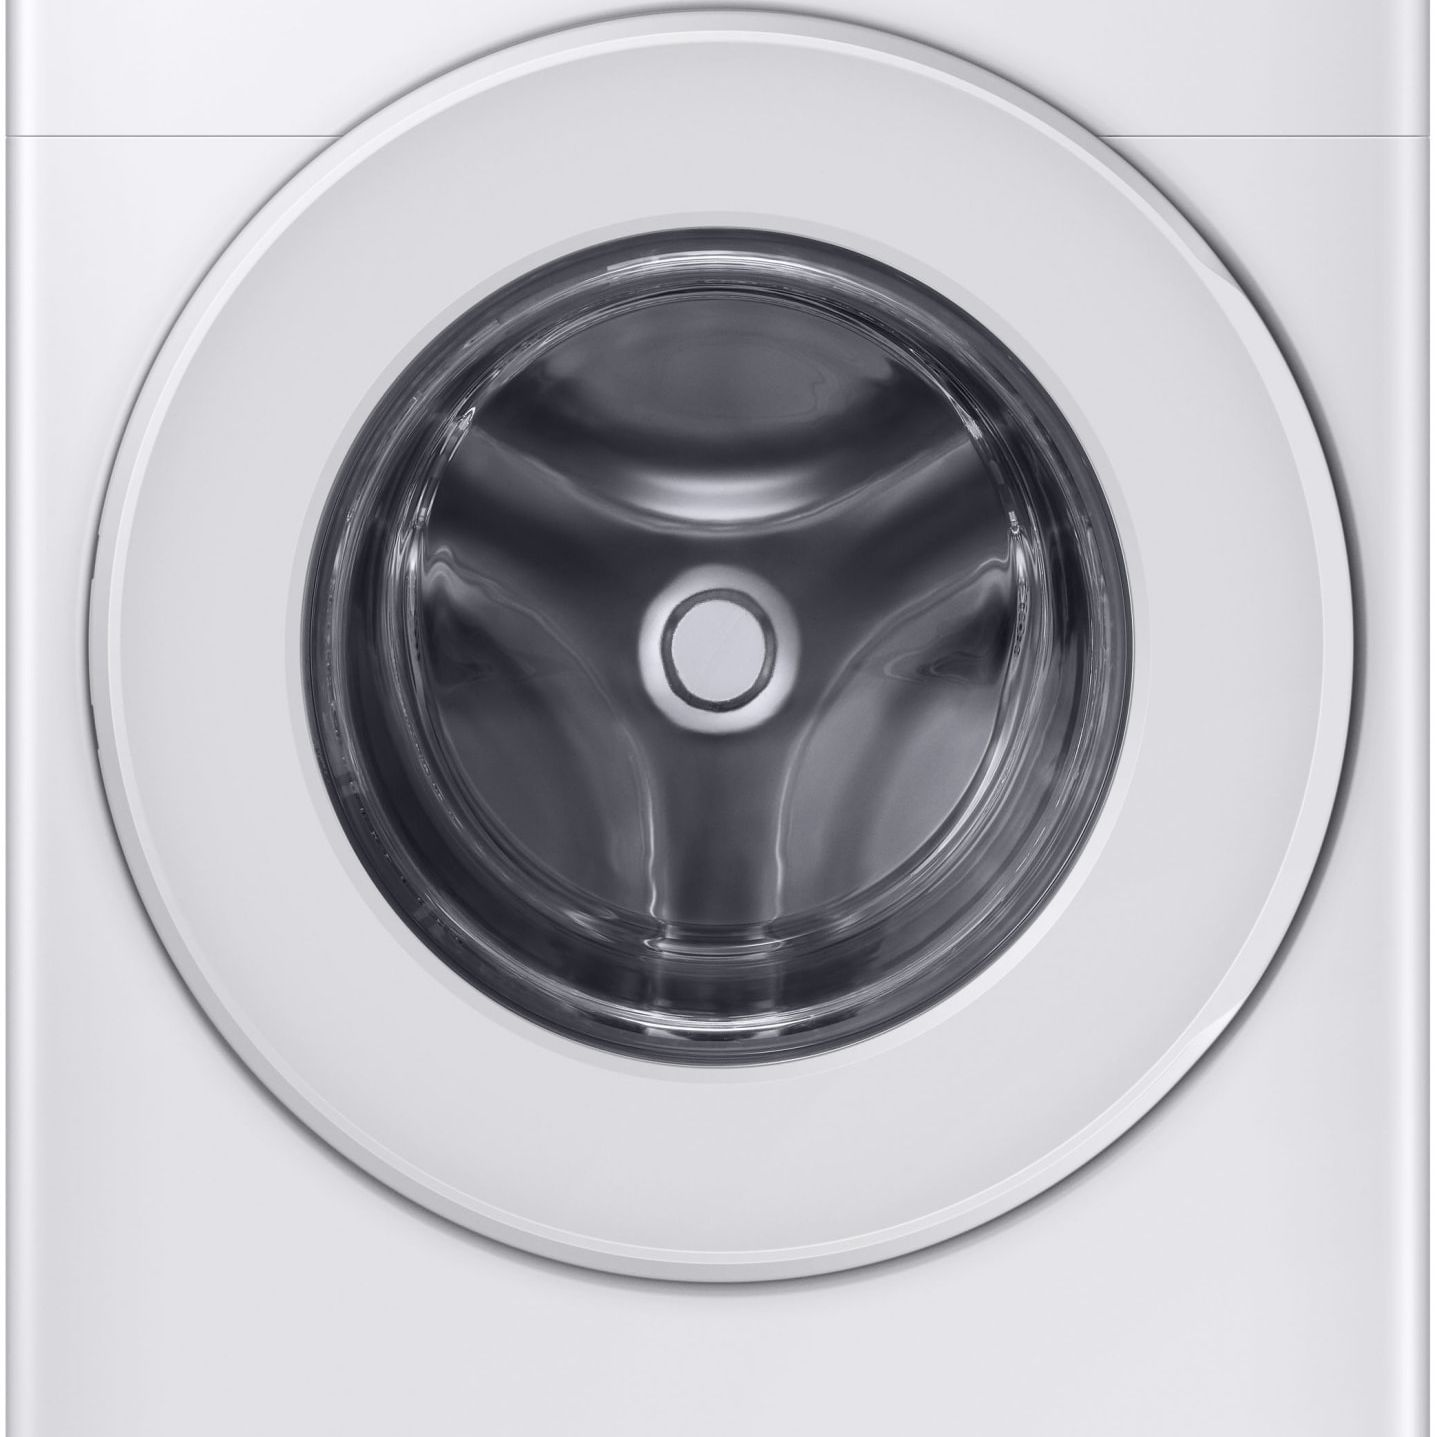 A Samsung washing machine from AJ Madison is front-loading.